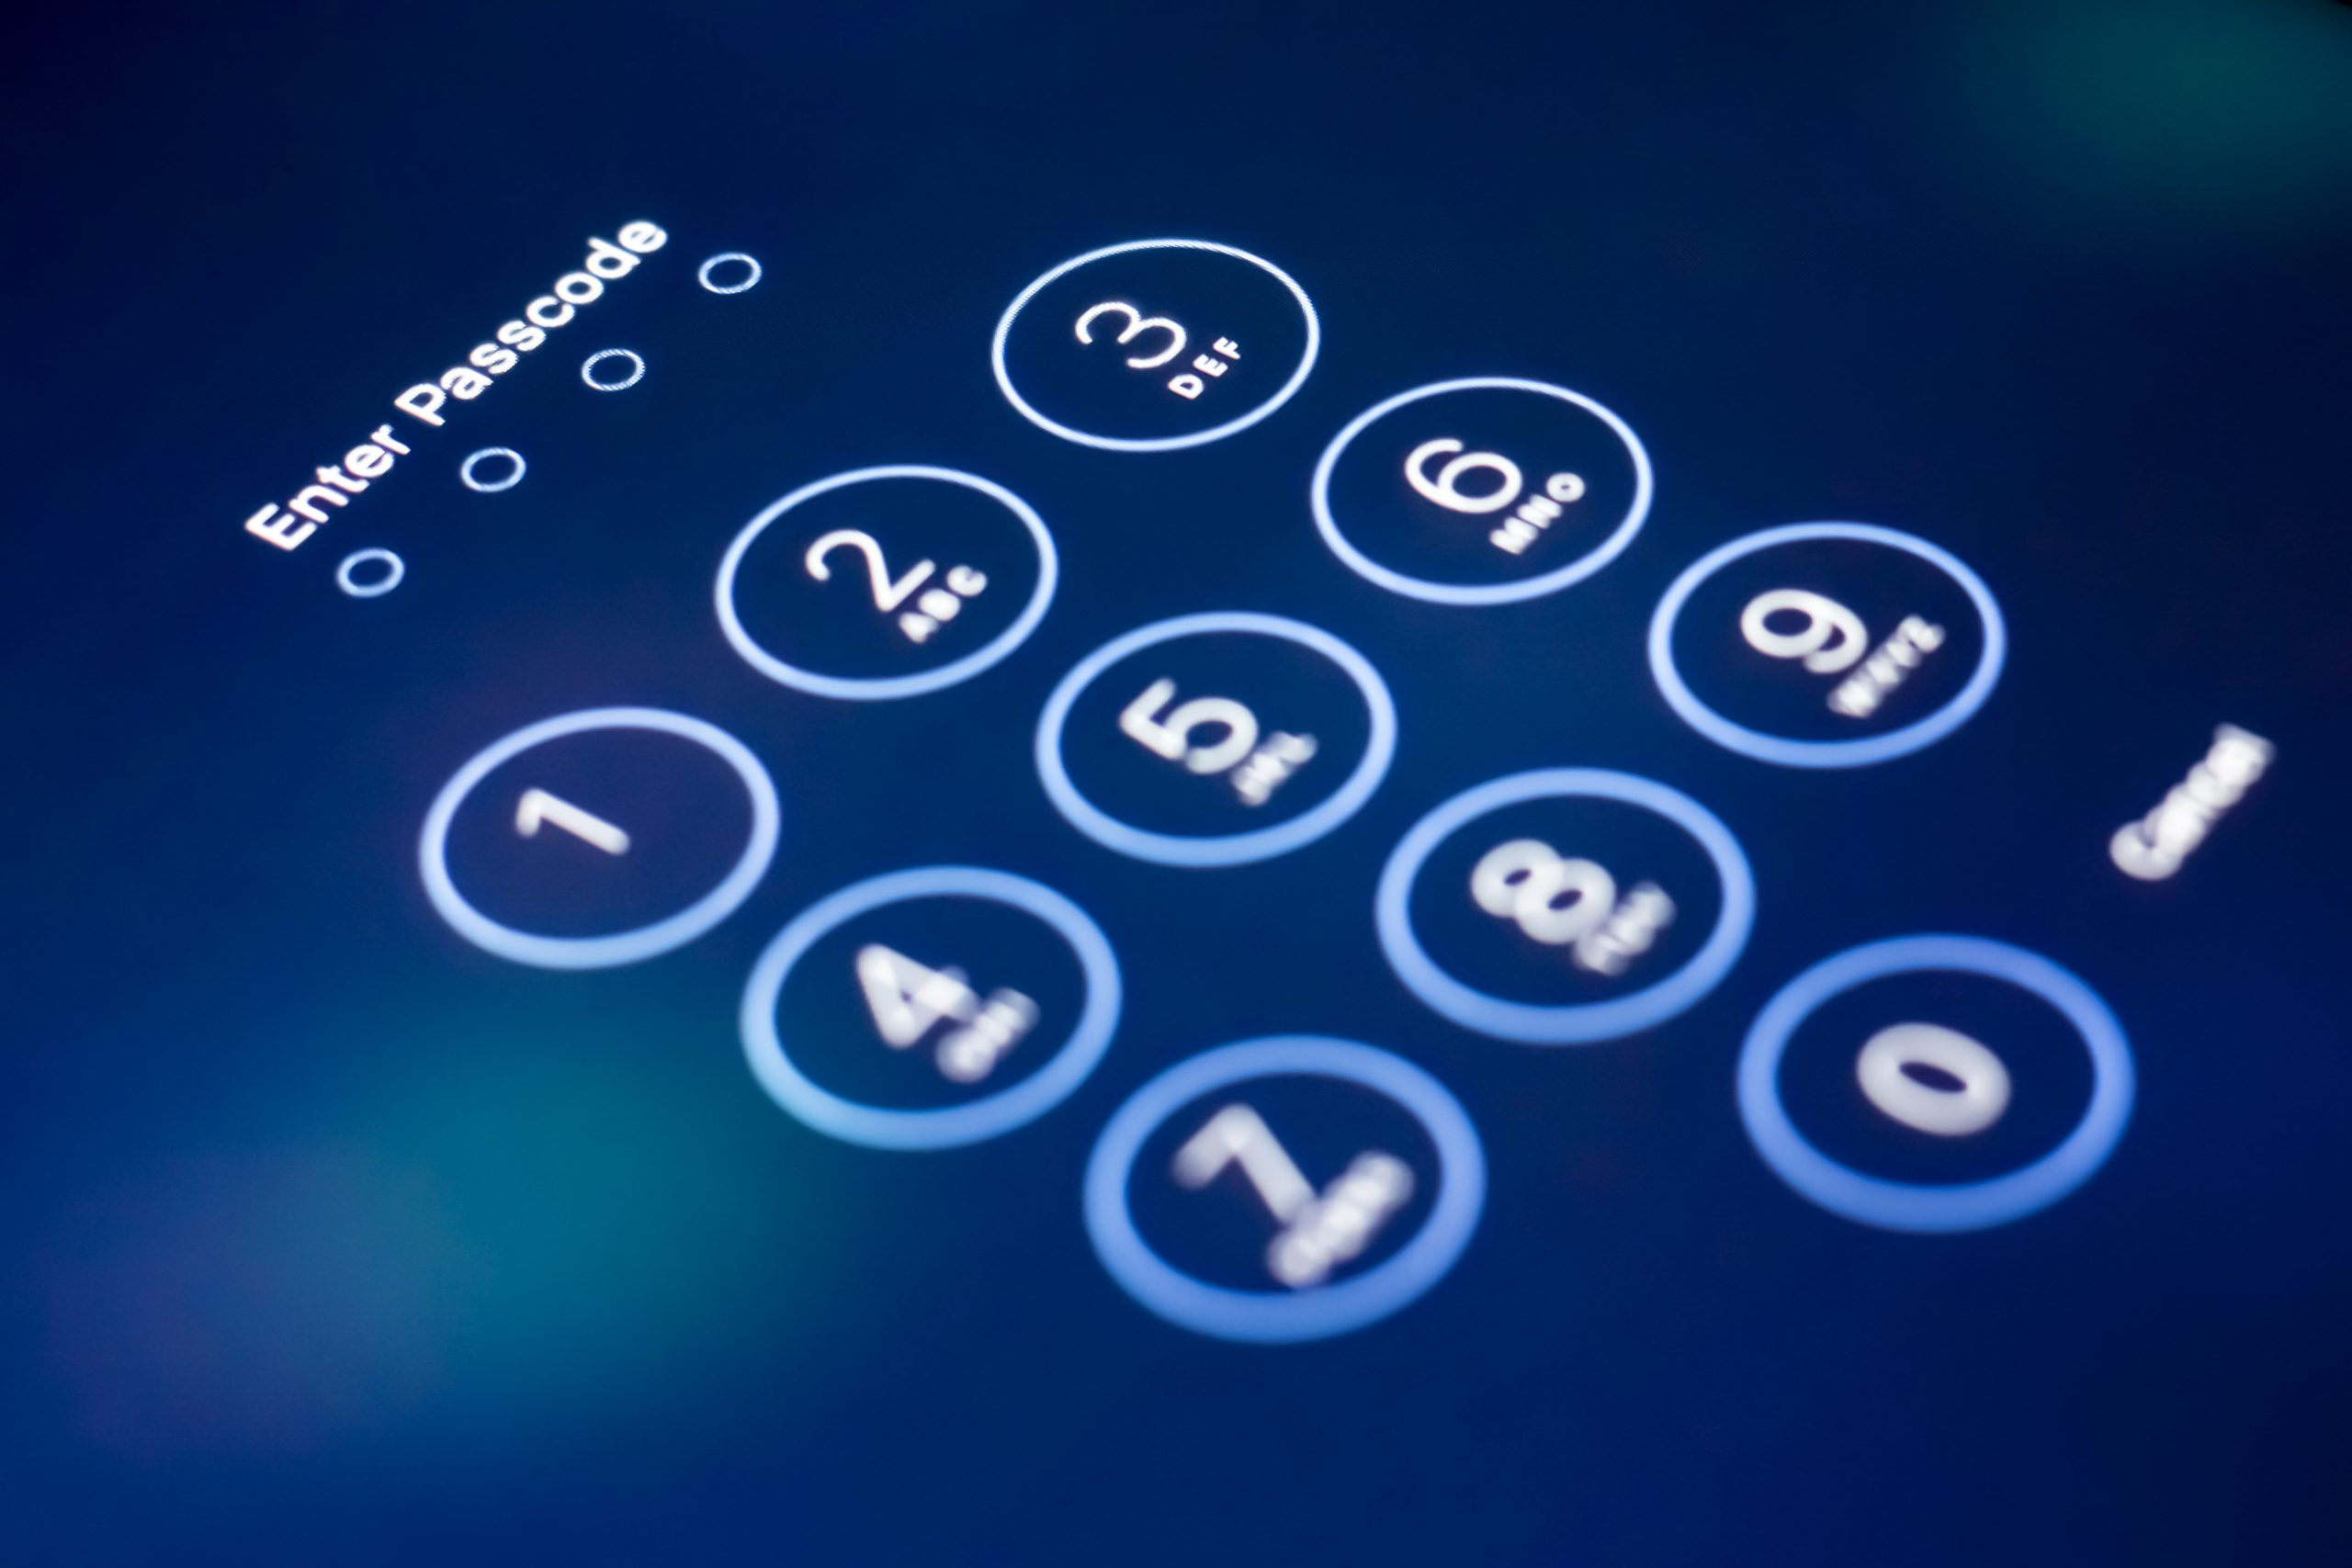 Securing devices with a passcode